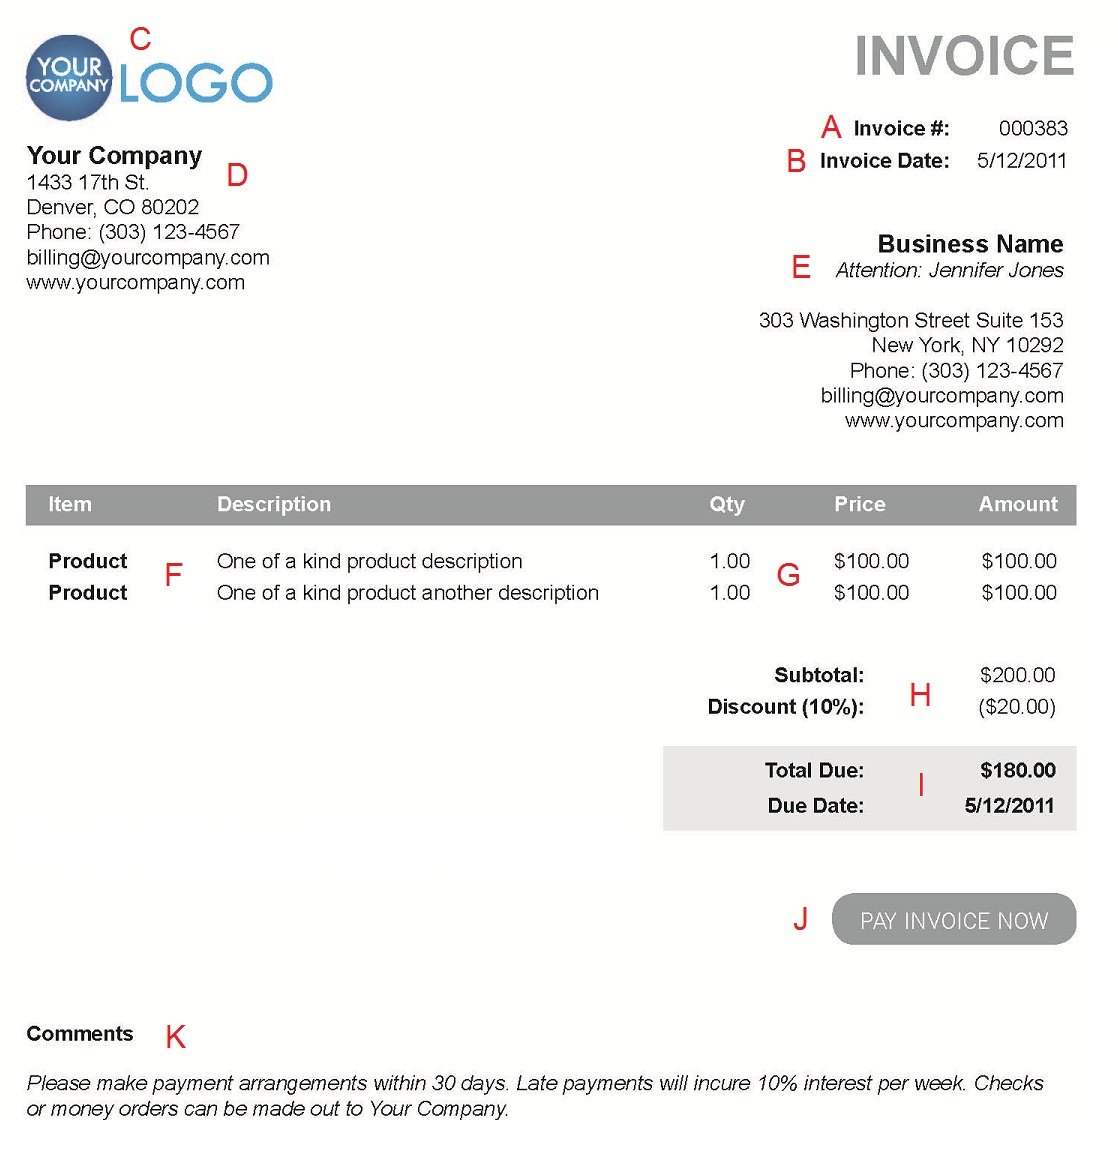 Opposenewapstandardsus  Surprising The  Different Sections Of An Electronic Payment Invoice With Licious A  With Comely Sample Receipt For Payment Also Scanning Receipts Into Quickbooks In Addition How To Fake A Receipt And Cif Gear Receipt As Well As What Receipts To Save For Taxes Additionally Android Receipt App From Paysimplecom With Opposenewapstandardsus  Licious The  Different Sections Of An Electronic Payment Invoice With Comely A  And Surprising Sample Receipt For Payment Also Scanning Receipts Into Quickbooks In Addition How To Fake A Receipt From Paysimplecom